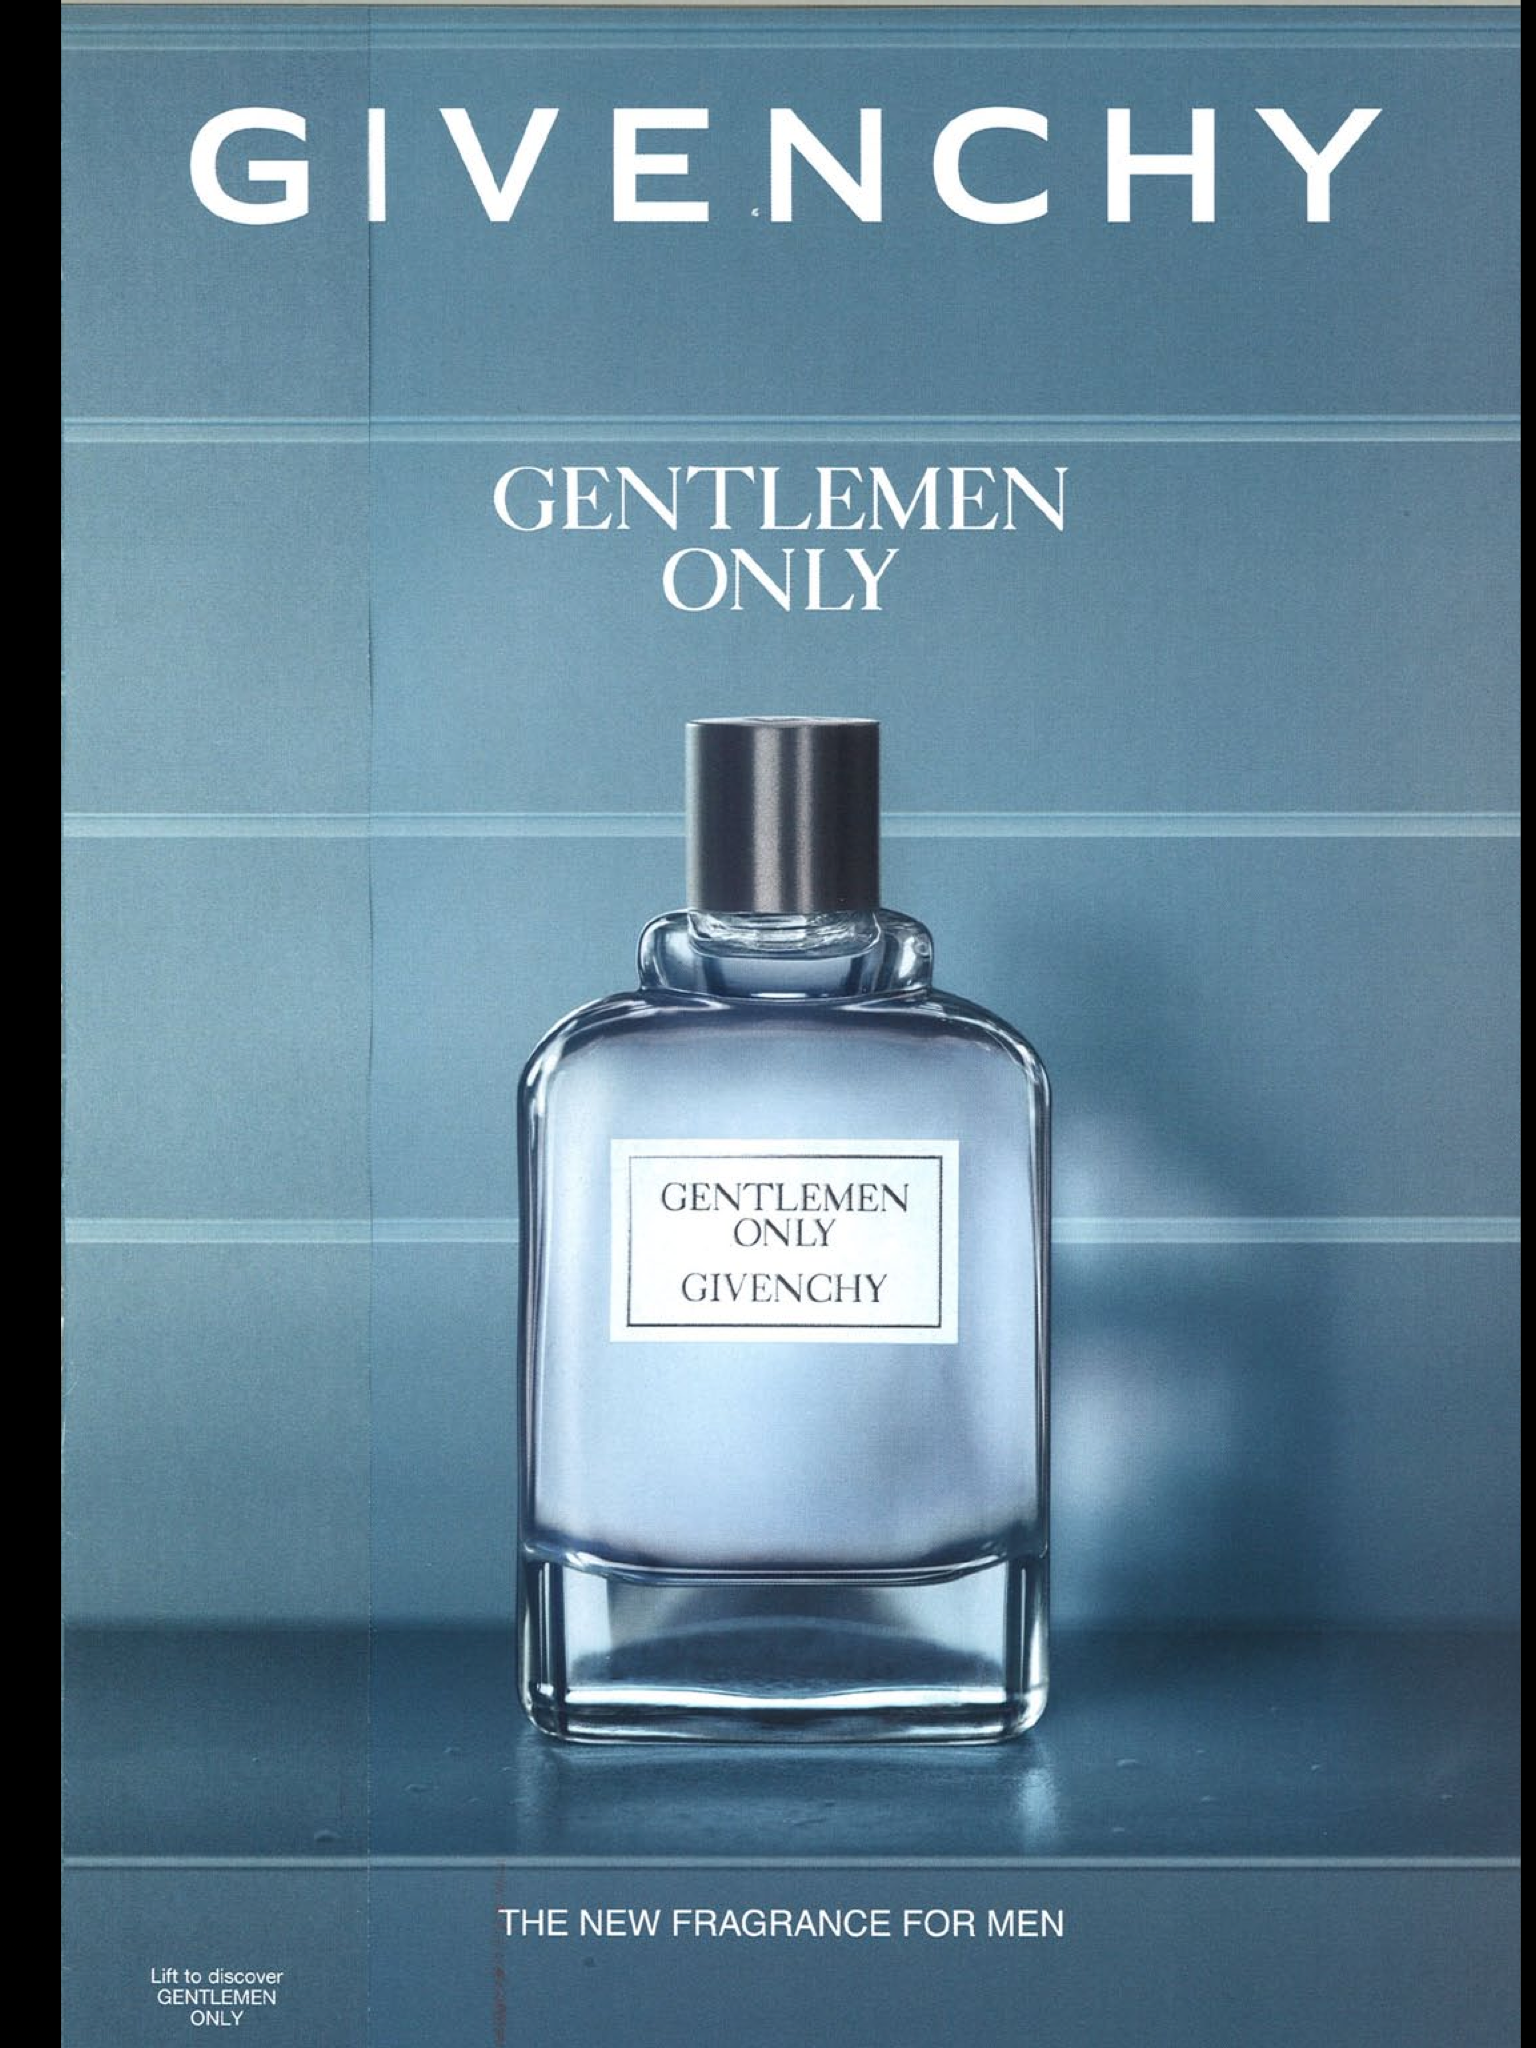 547fe5085 I love finding perfume ads in my magazines. Most of the time they always  come